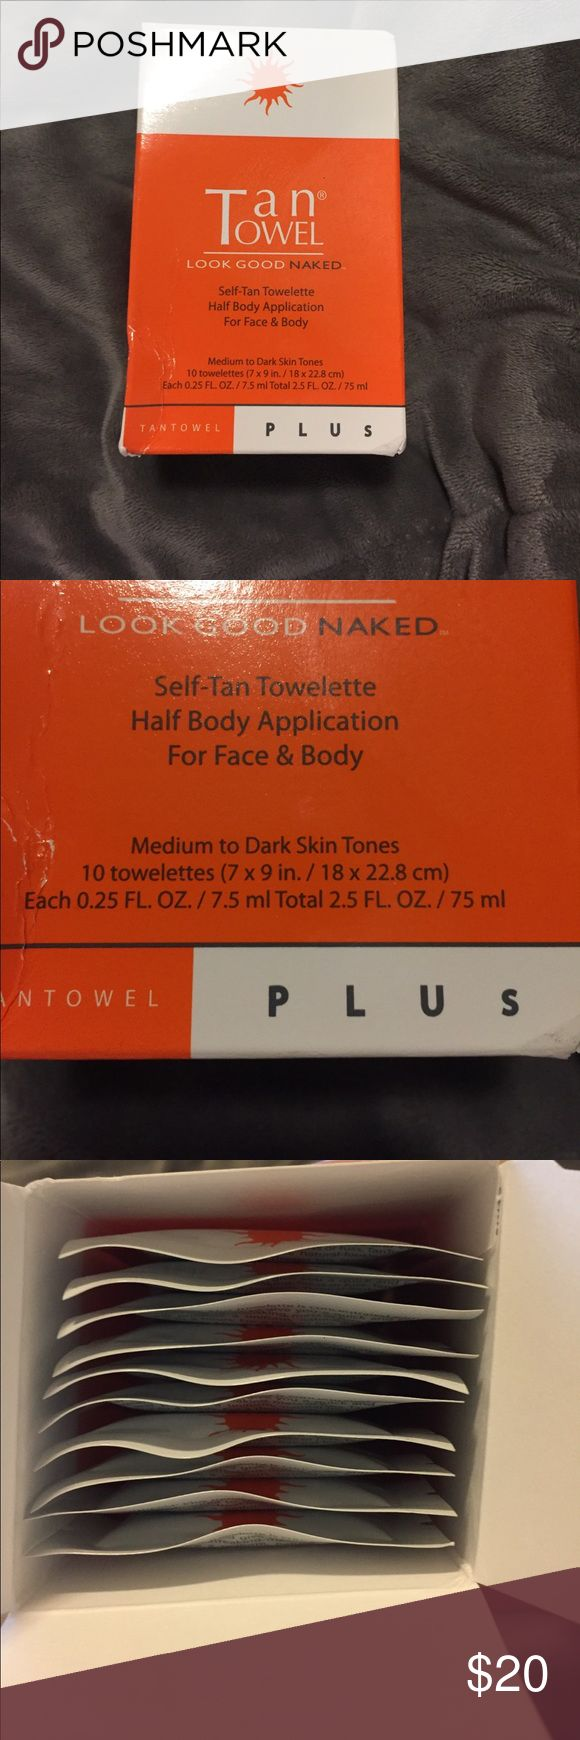 Tan Towel- Medium to Dark Skin Tones NEW! Tan Towel Self Tan Towelettes. Pack of 10 half body application! Has not been used- the box is a little damaged on the outside, but as shown in the pictures all 10 are inside the box! Tan Towel Makeup